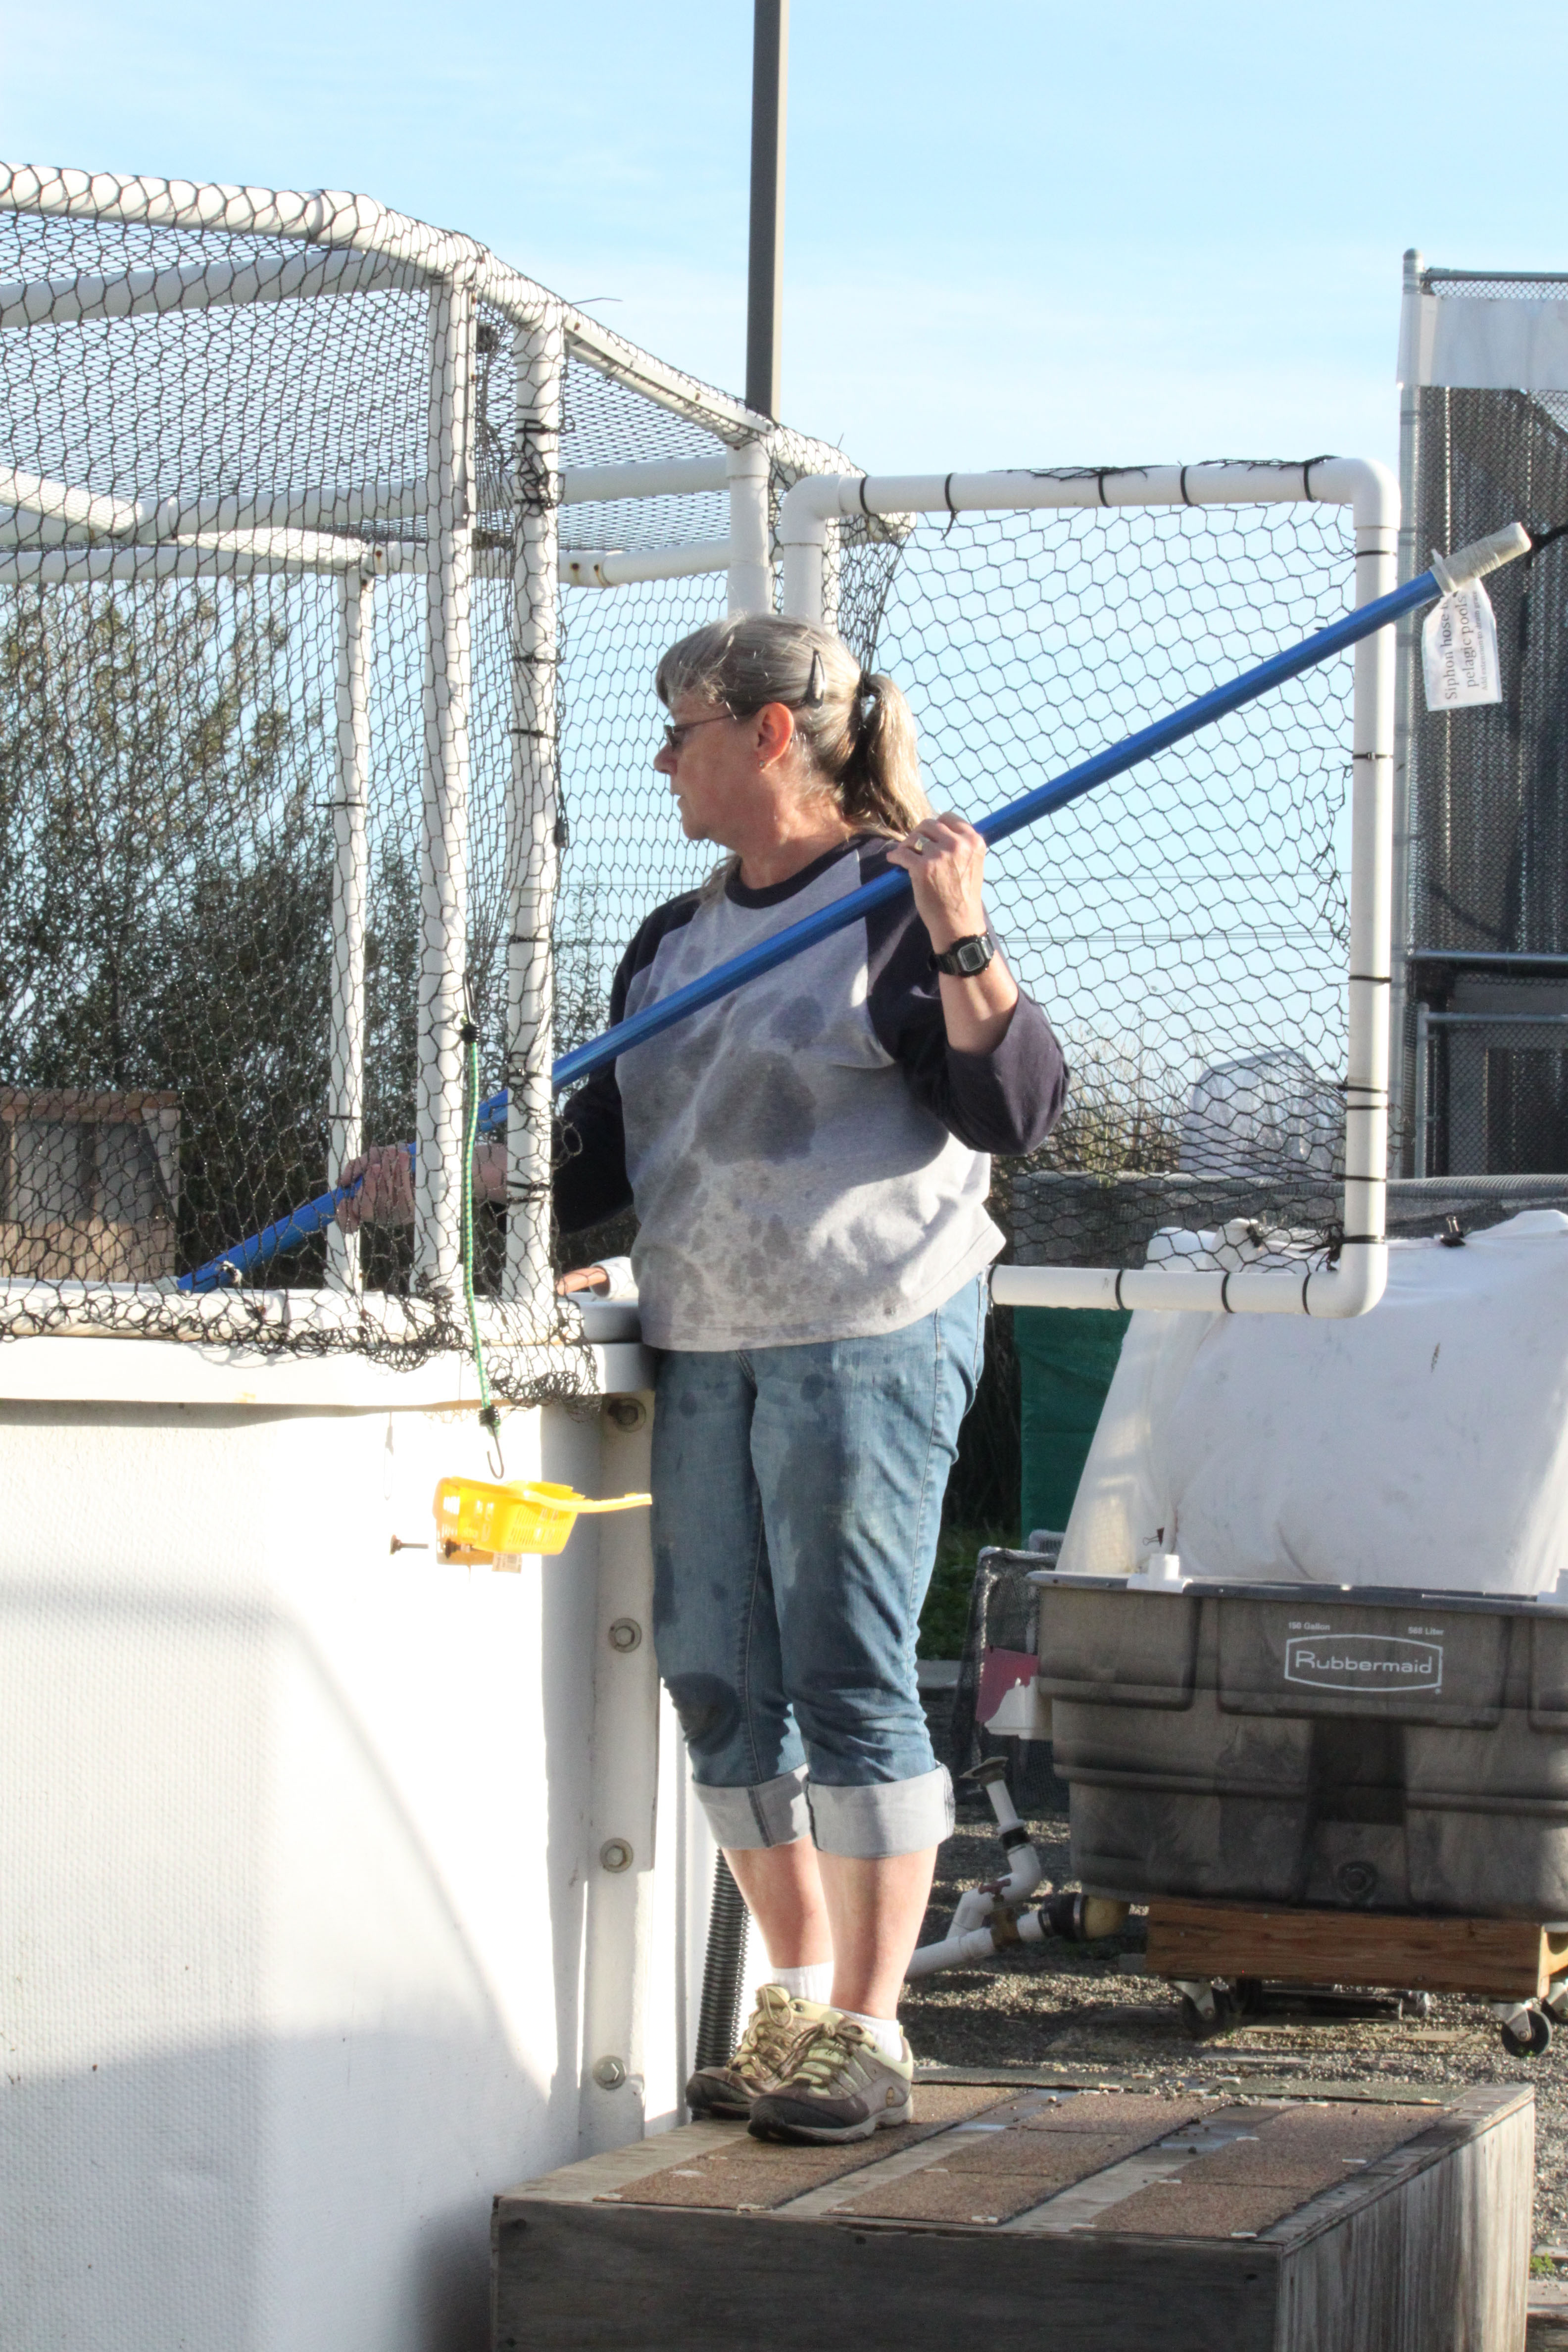 SF Bay Center volunteer Lela Nishizaki siphoning a pool